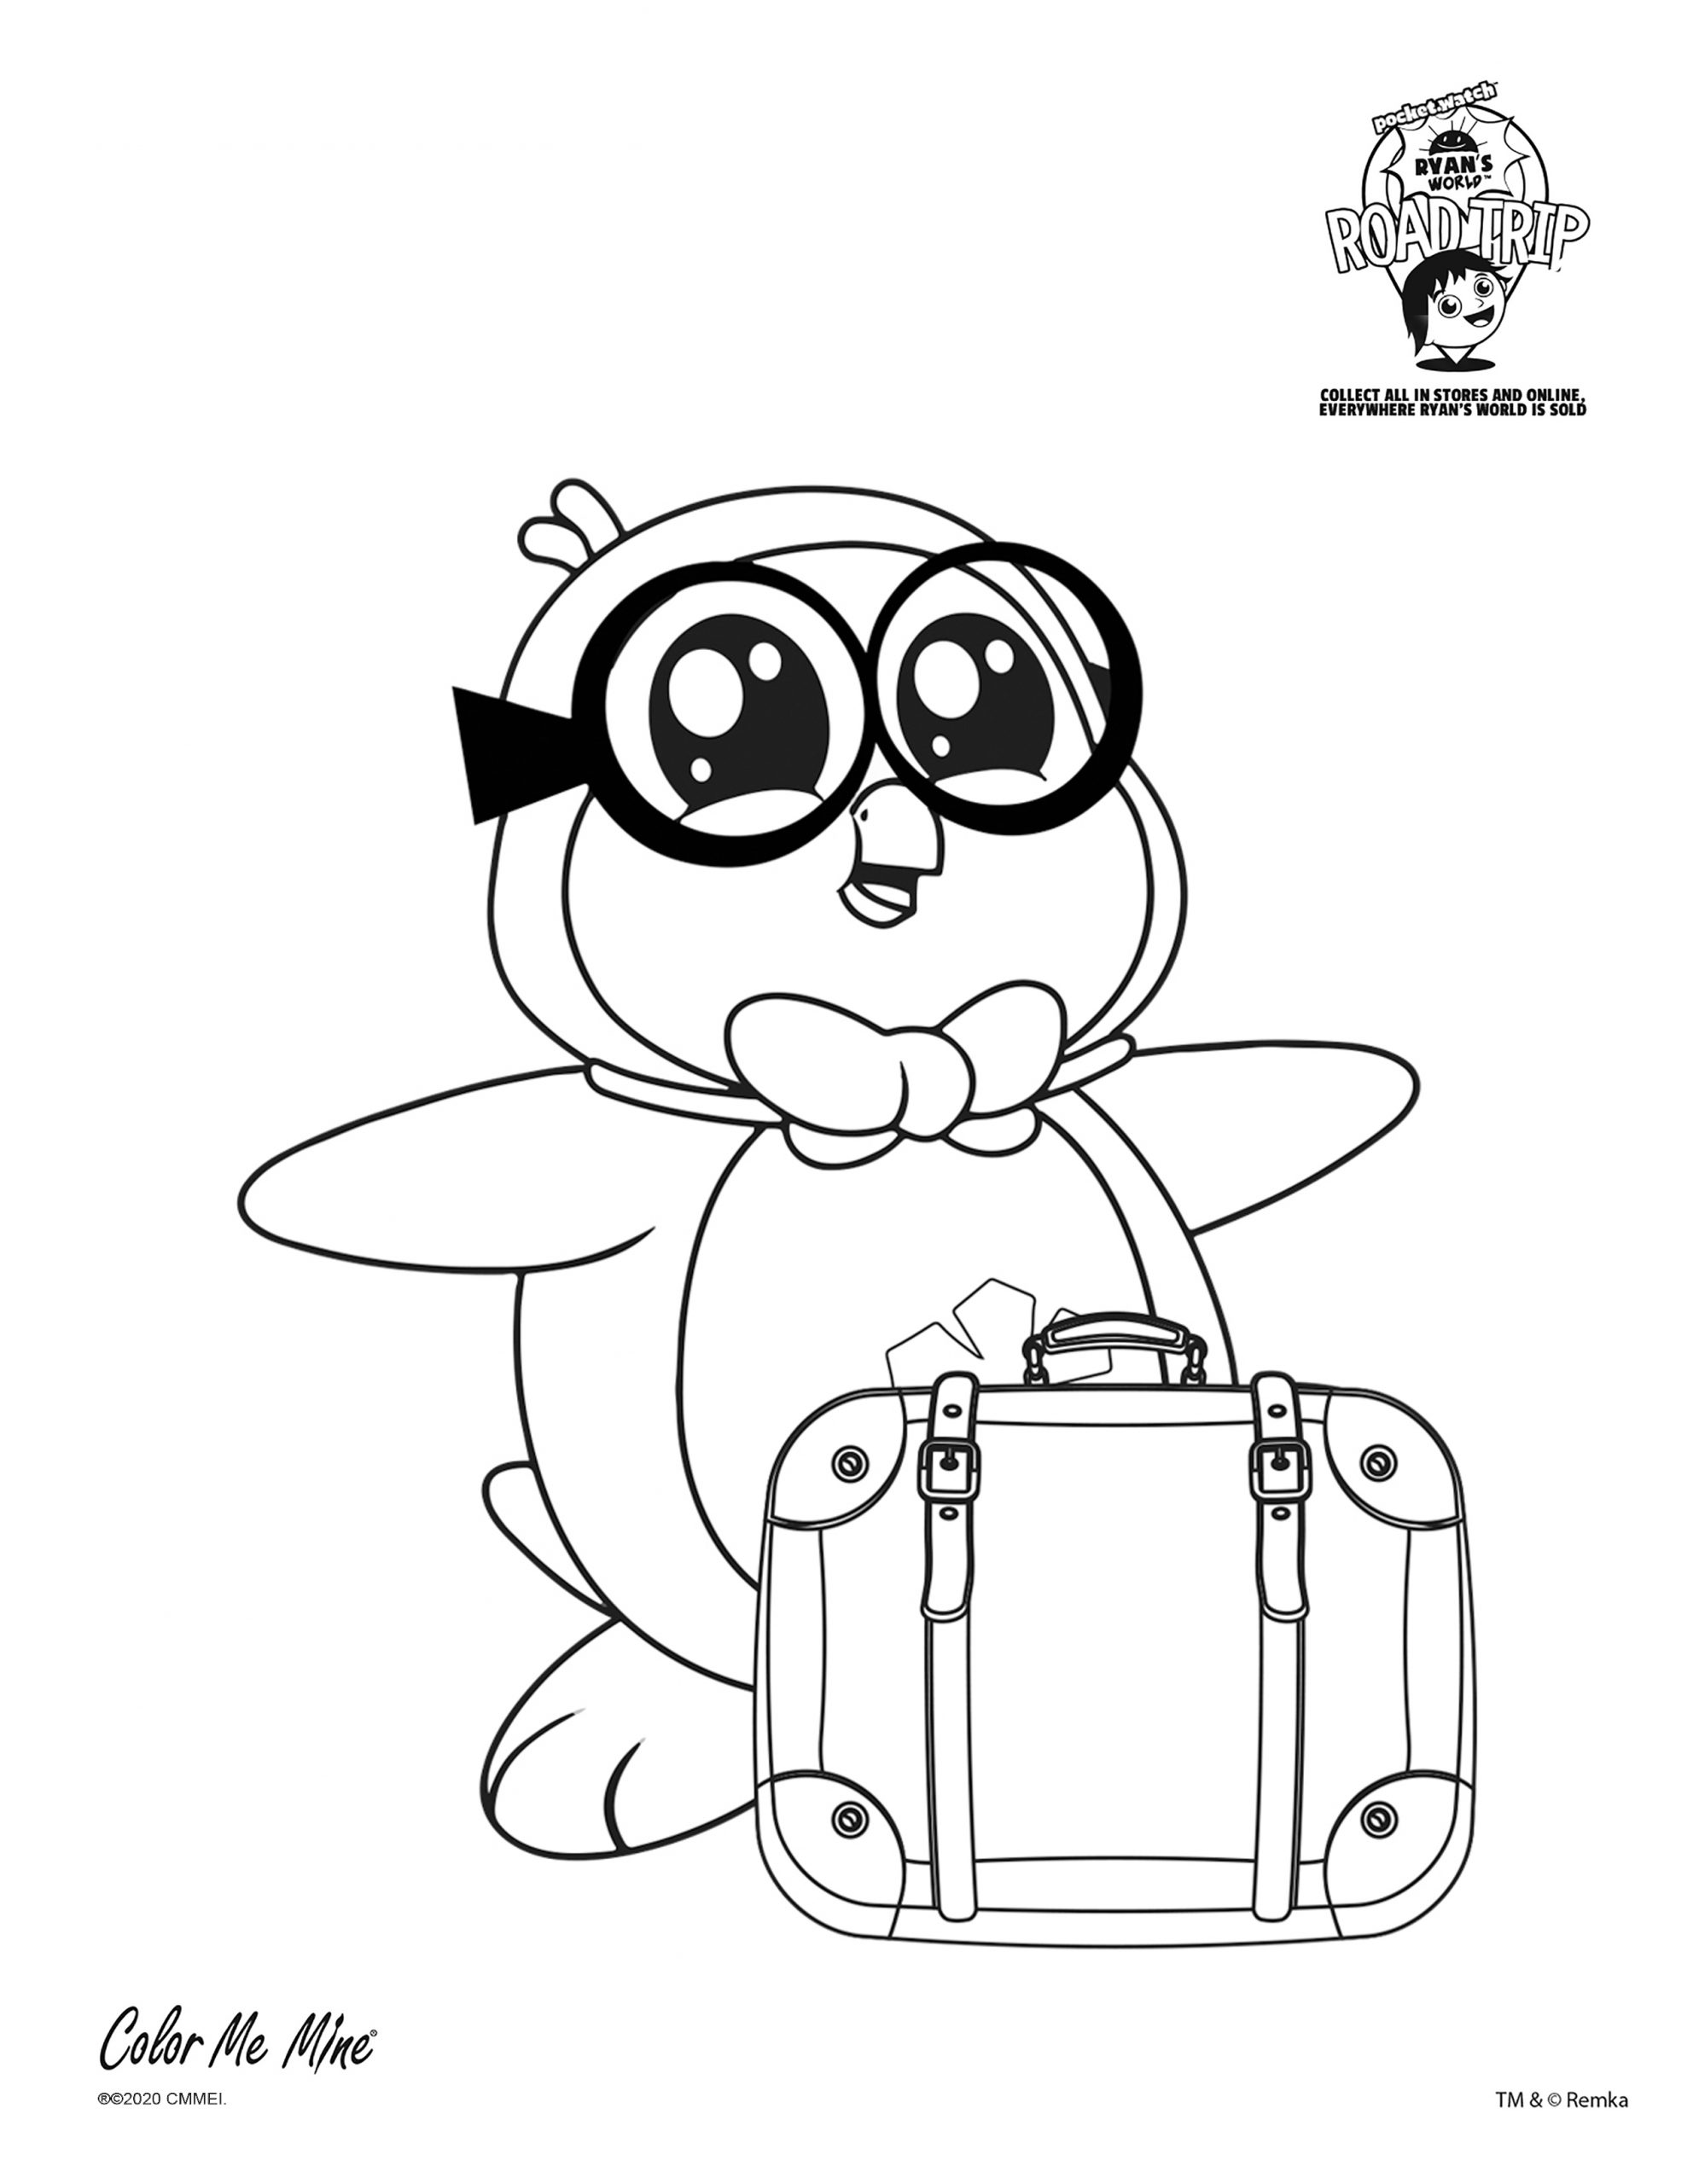 Ryan Coloring Pages Free - The Ryan Gosling Coloring Book